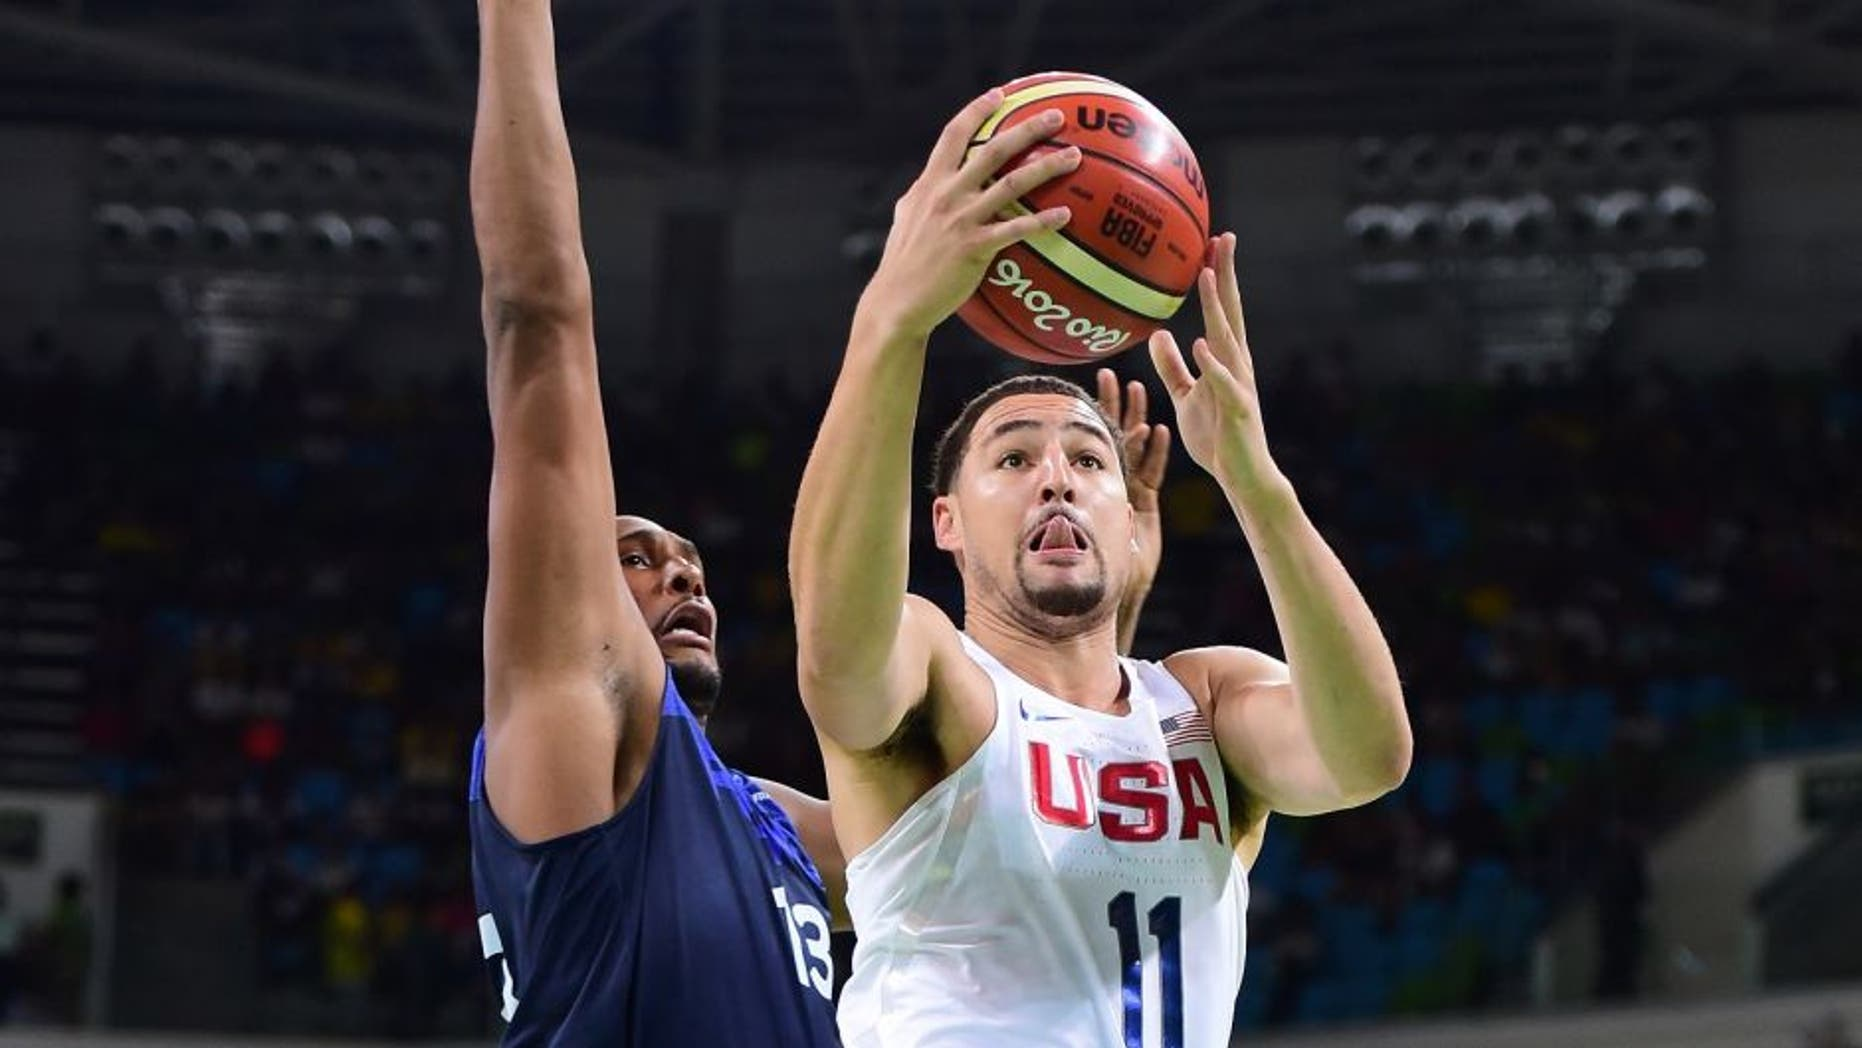 RIO DE JANEIRO, BRAZIL - AUGUST 14: Klay Thompson #11 of United States shoots past Boris Diaw #13 of France during a Men's Preliminary Round Group A game between the United States and France on Day 9 of the Rio 2016 Olympic Games at Carioca Arena 1 on August 14, 2016 in Rio de Janeiro, Brazil. (Photo by Harry How/Getty Images)